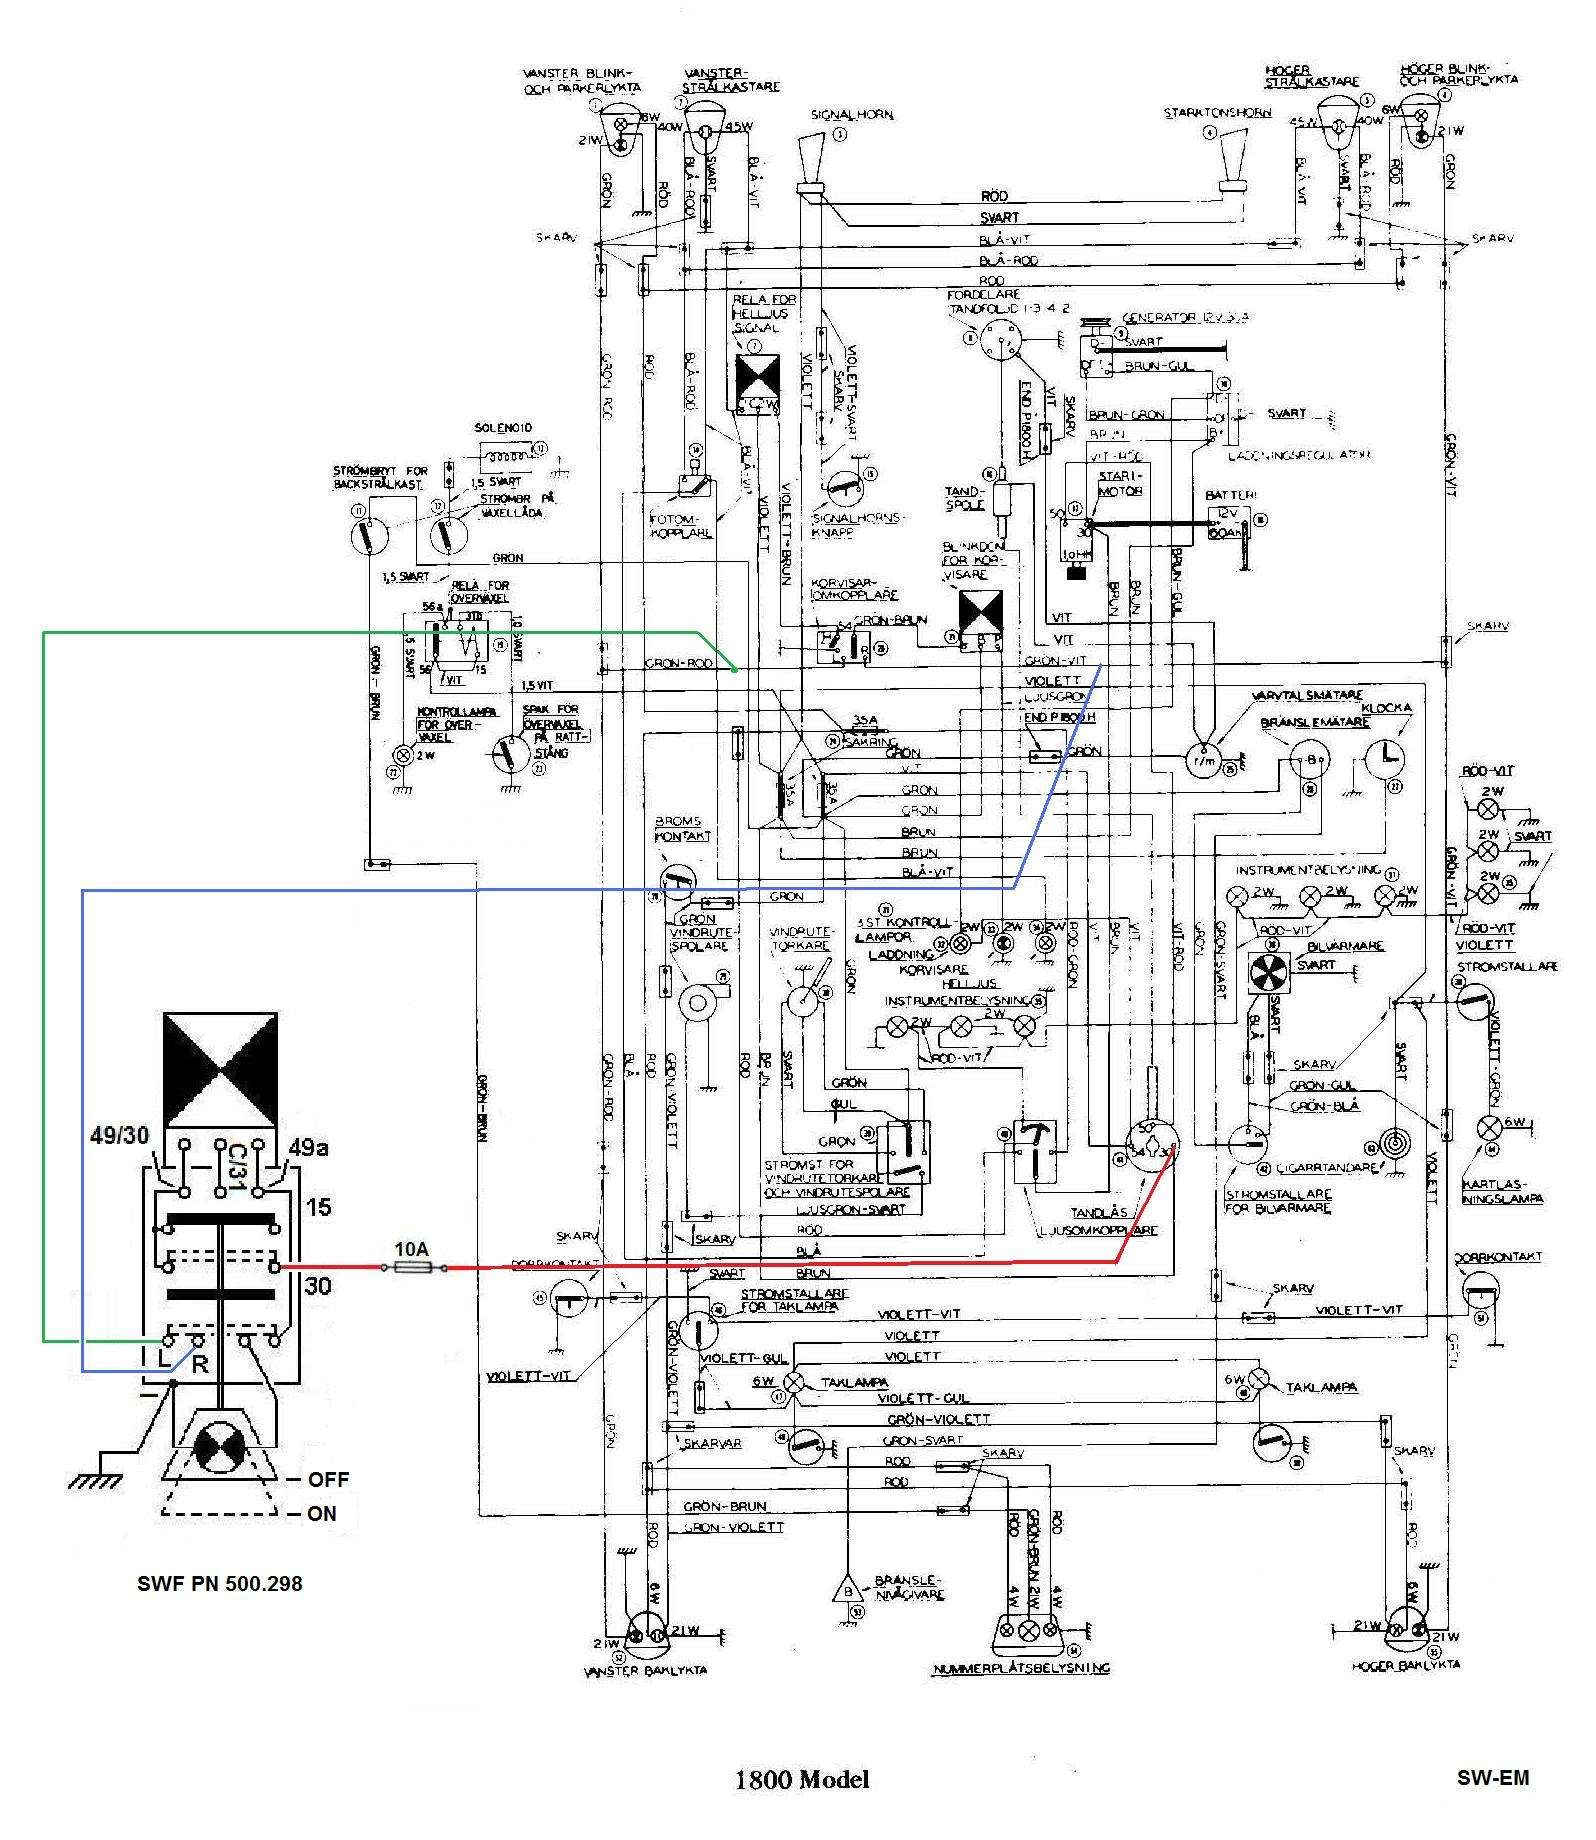 Wiring Diagram 3 Way Switch Beautiful Swf Wiring Diagram Diagram Light Switch Wiring Wire